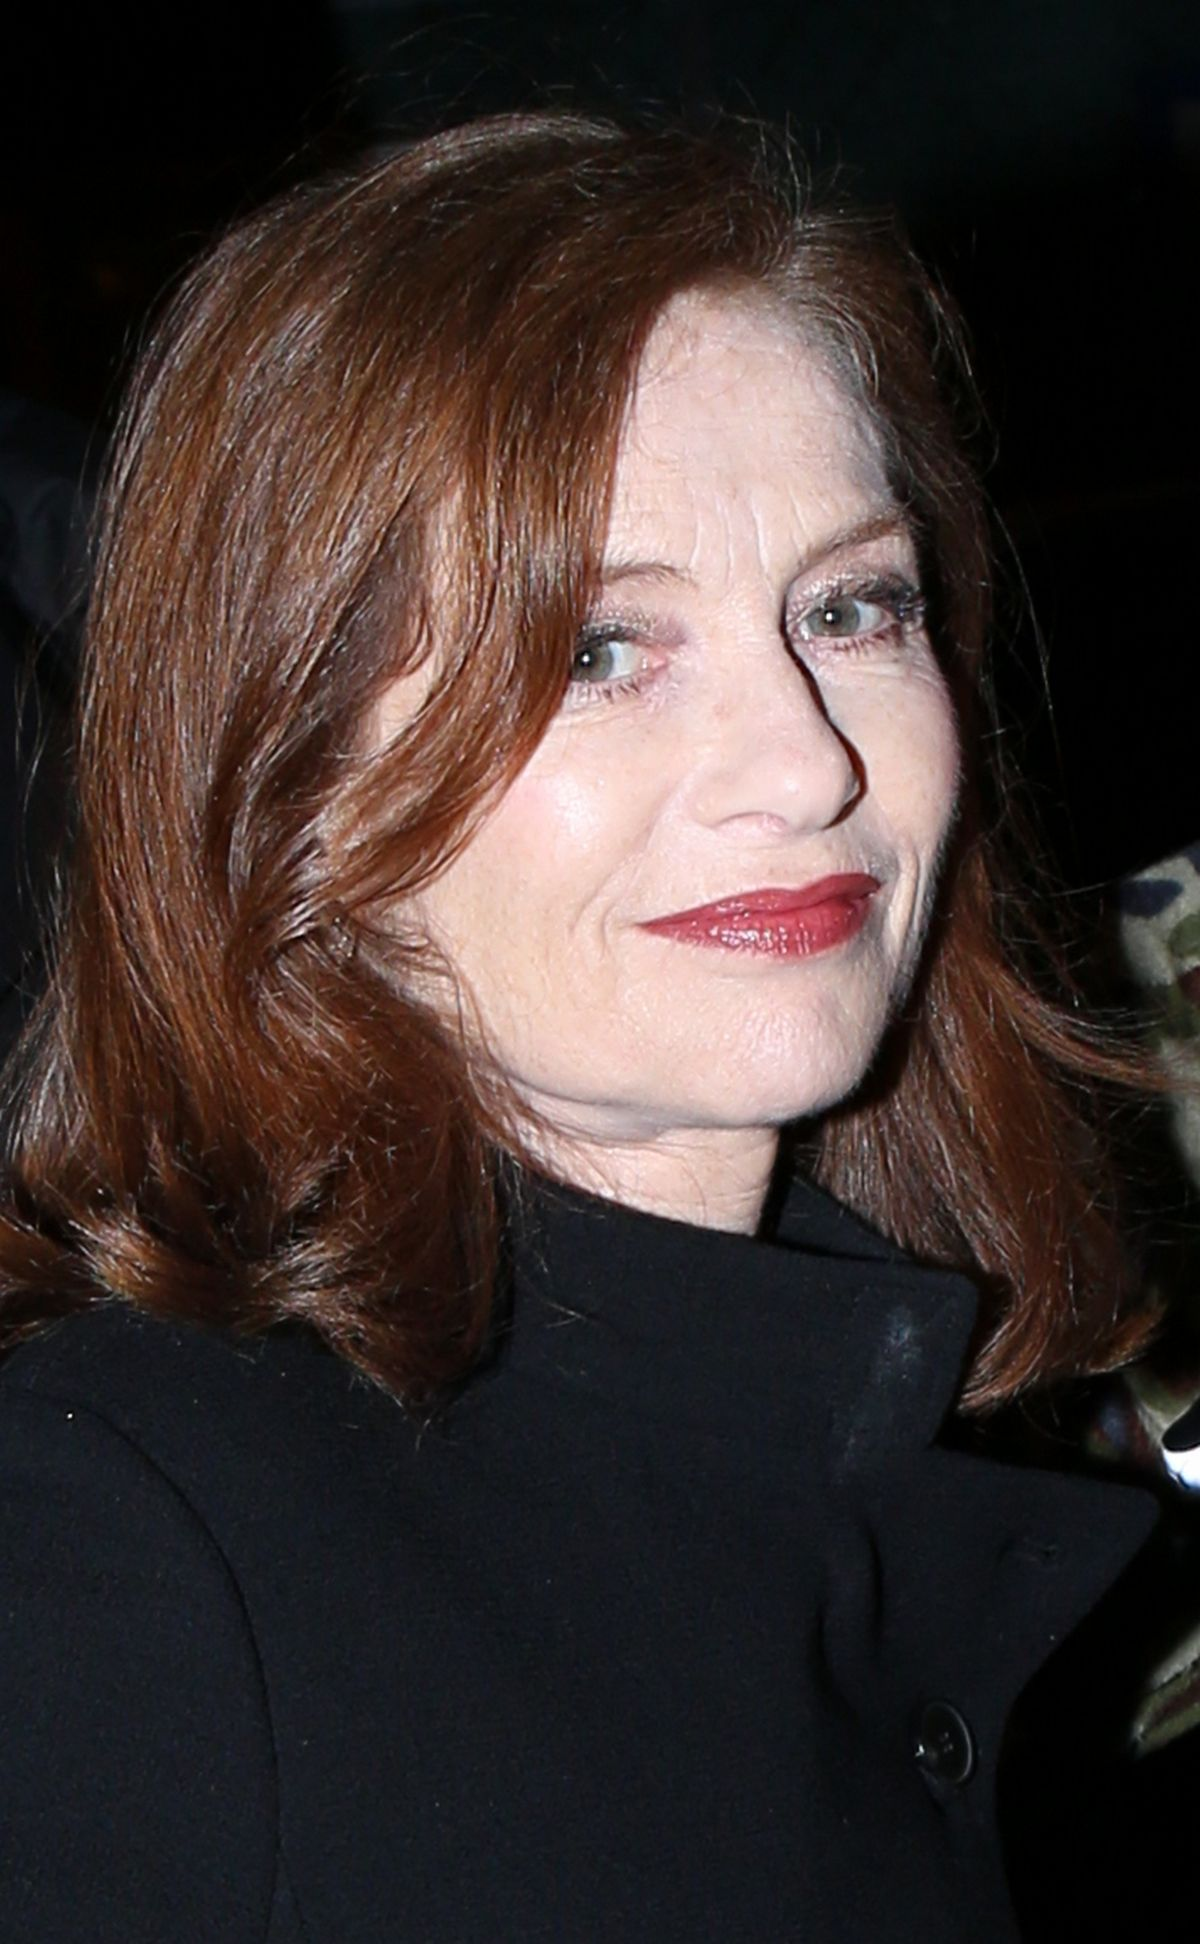 ISABELLE HUPPERT at Westminster Hotel in Paris 01/30/2017 - HawtCelebs